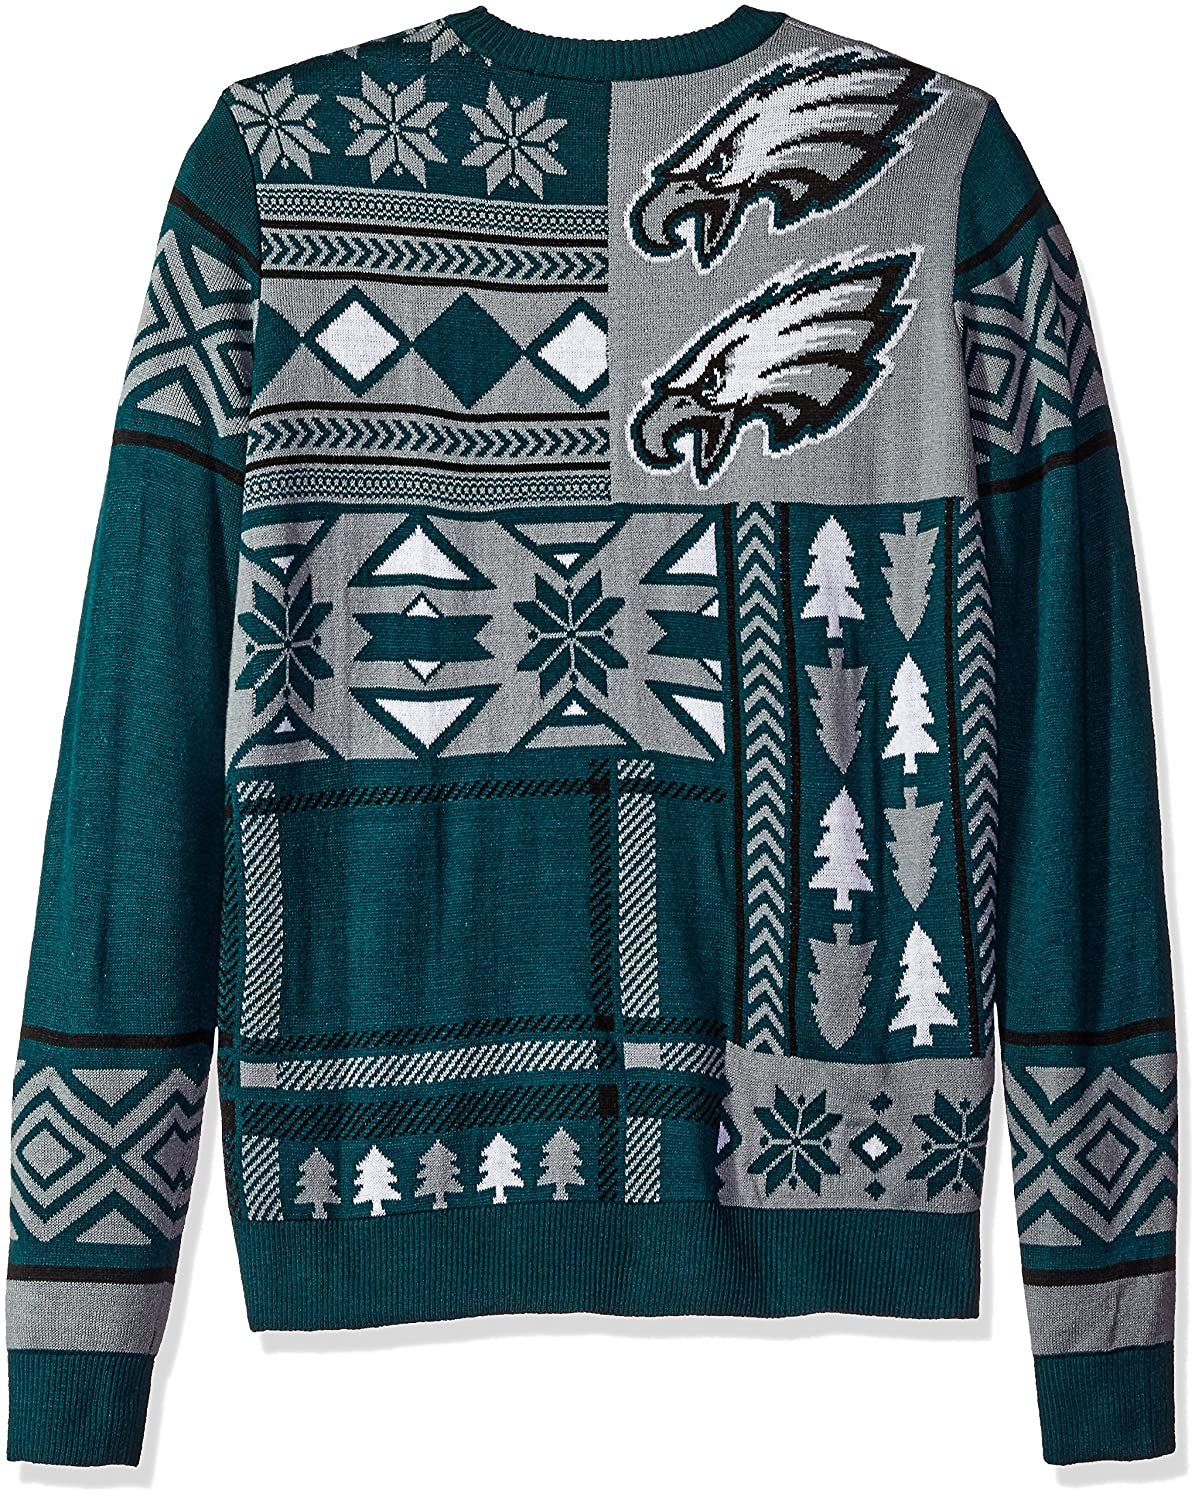 FOCO NFL Patches Style Ugly Sweater